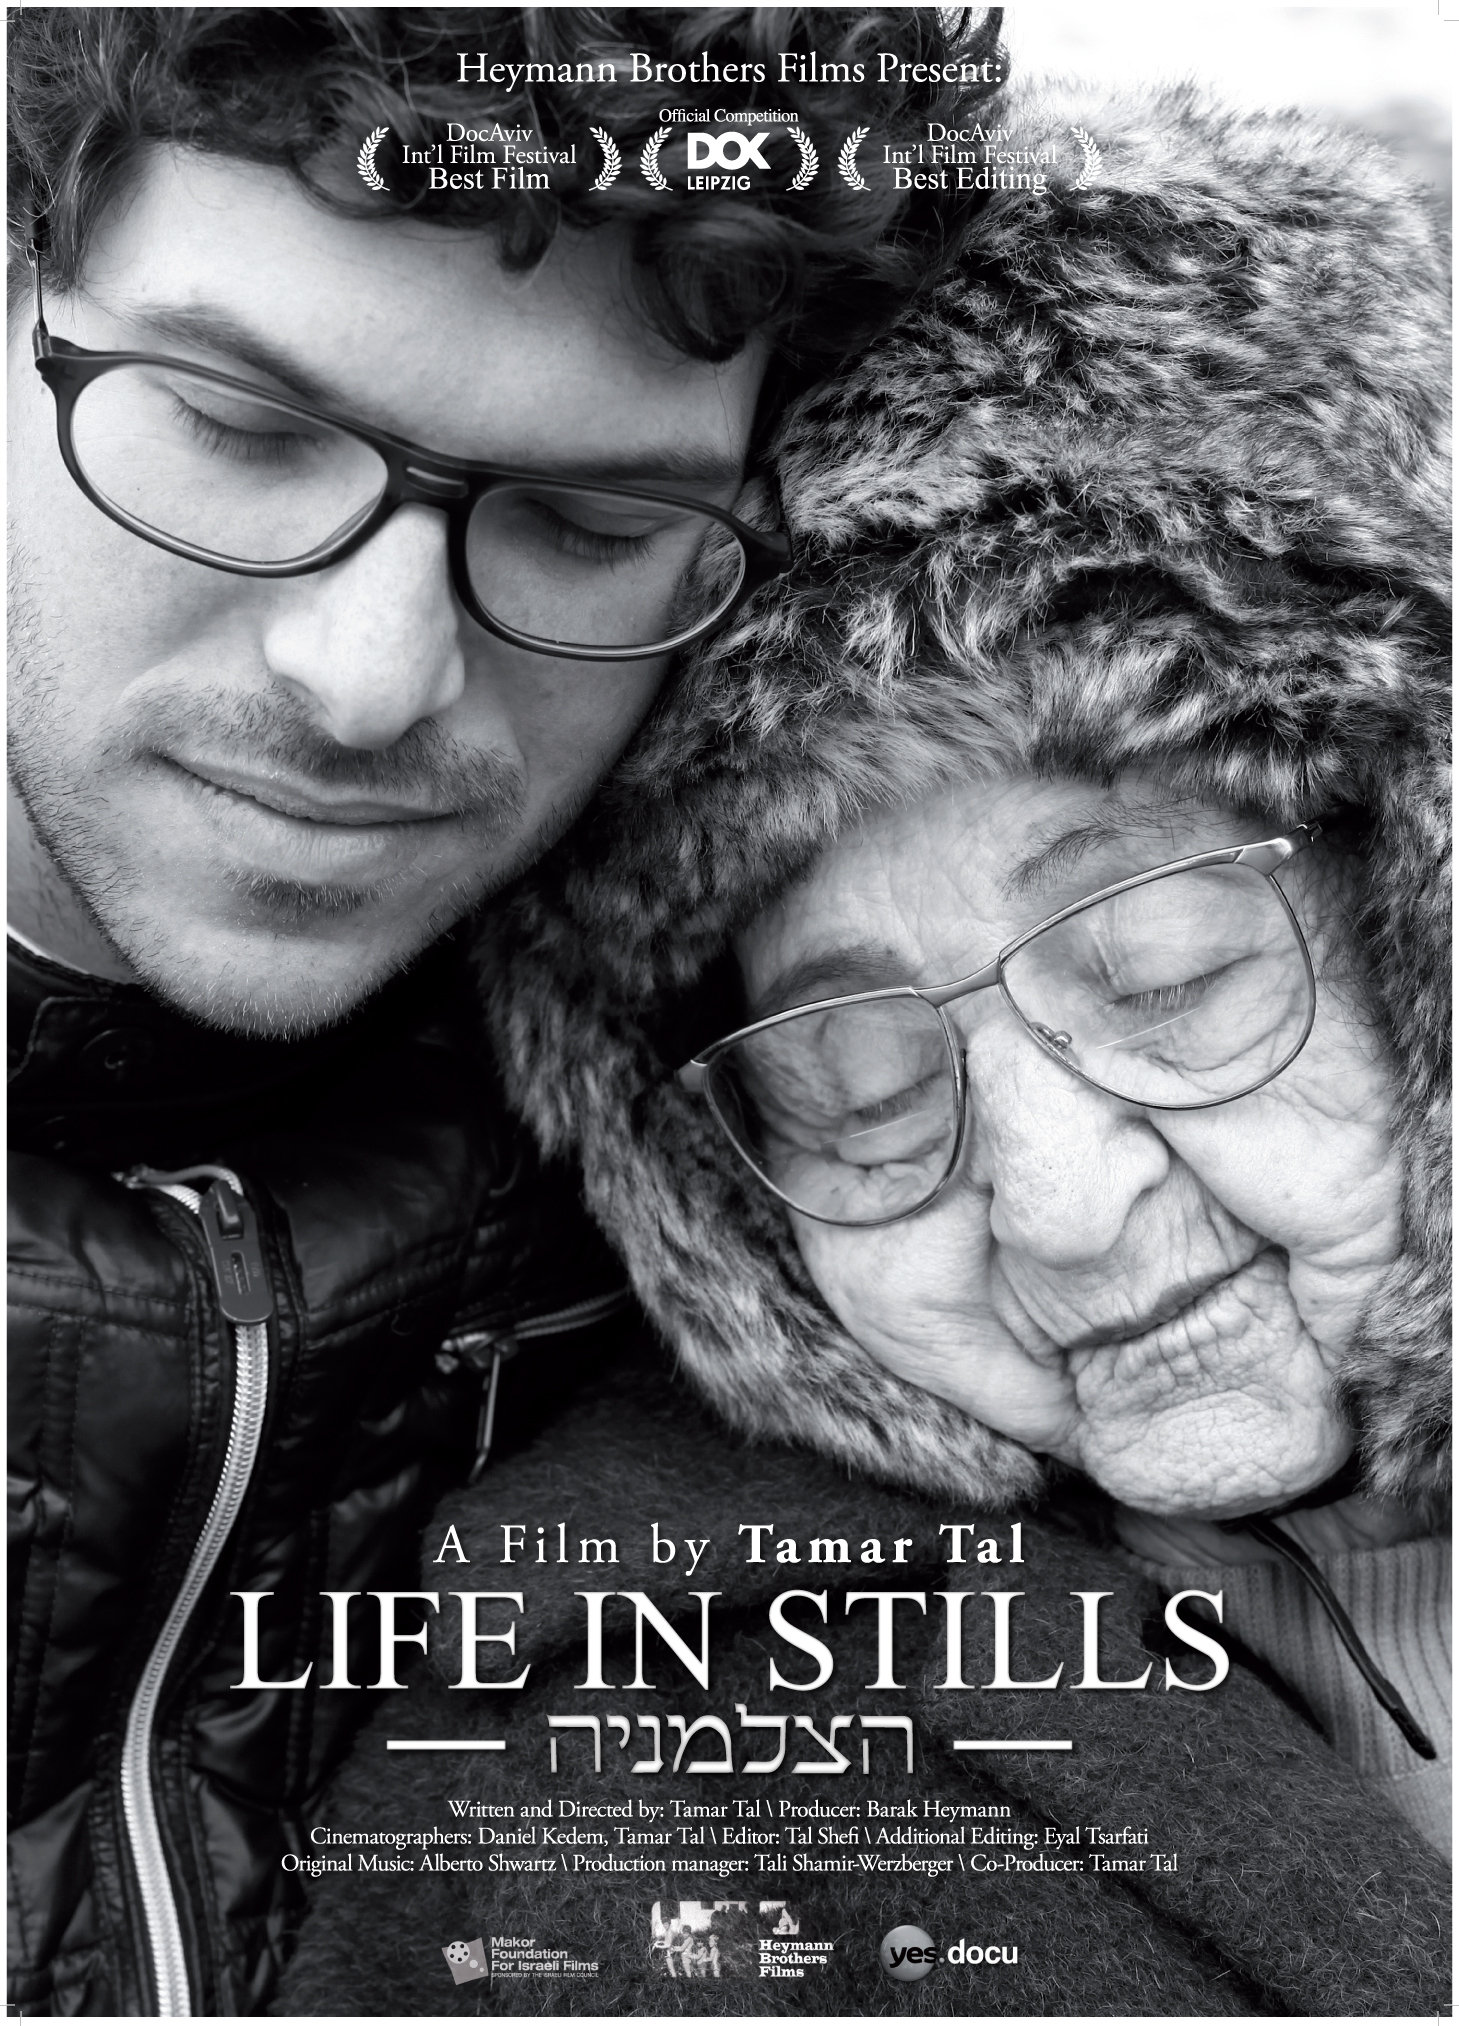 100 лет в фотографиях (Жизнь в фотографиях) / Life In Stills (2011)